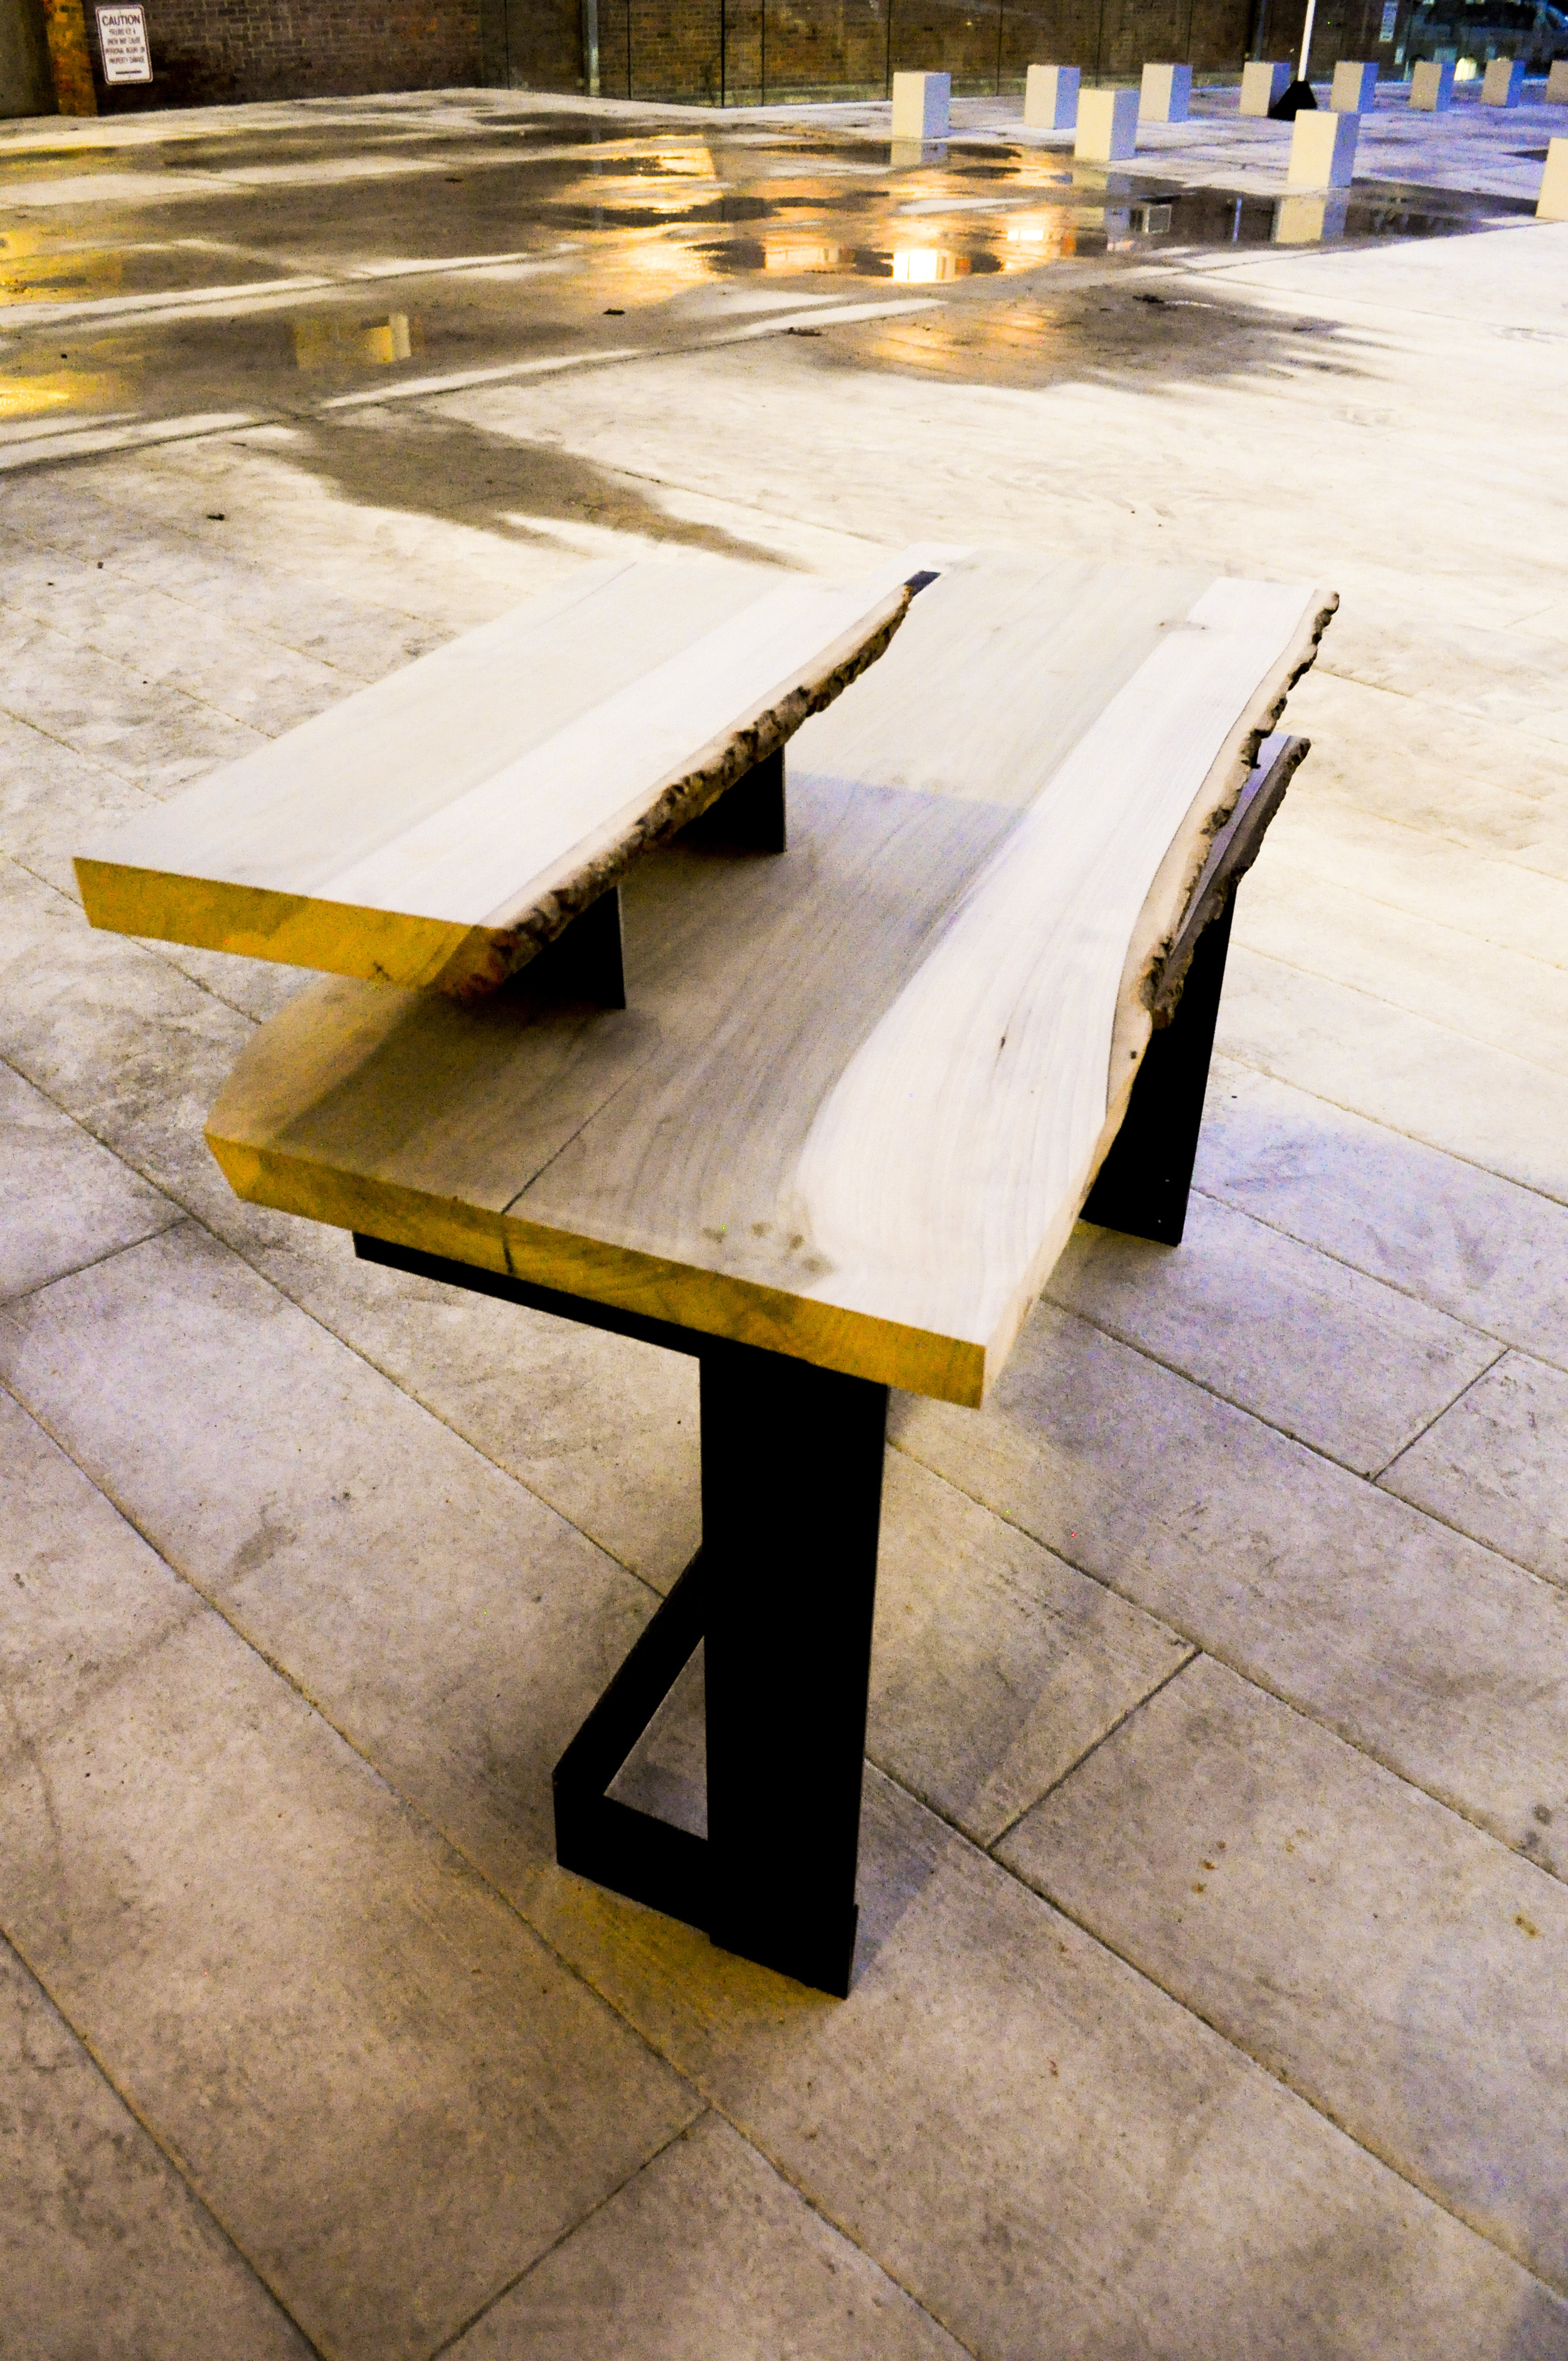 A surface for ideas - Natural-edged poplar combined with a steel base.Constructed by folding the metal through the wood, suspending the slab in the air and making a space for one to sit, ponder and manifest ideas into life.Approx. size: 50